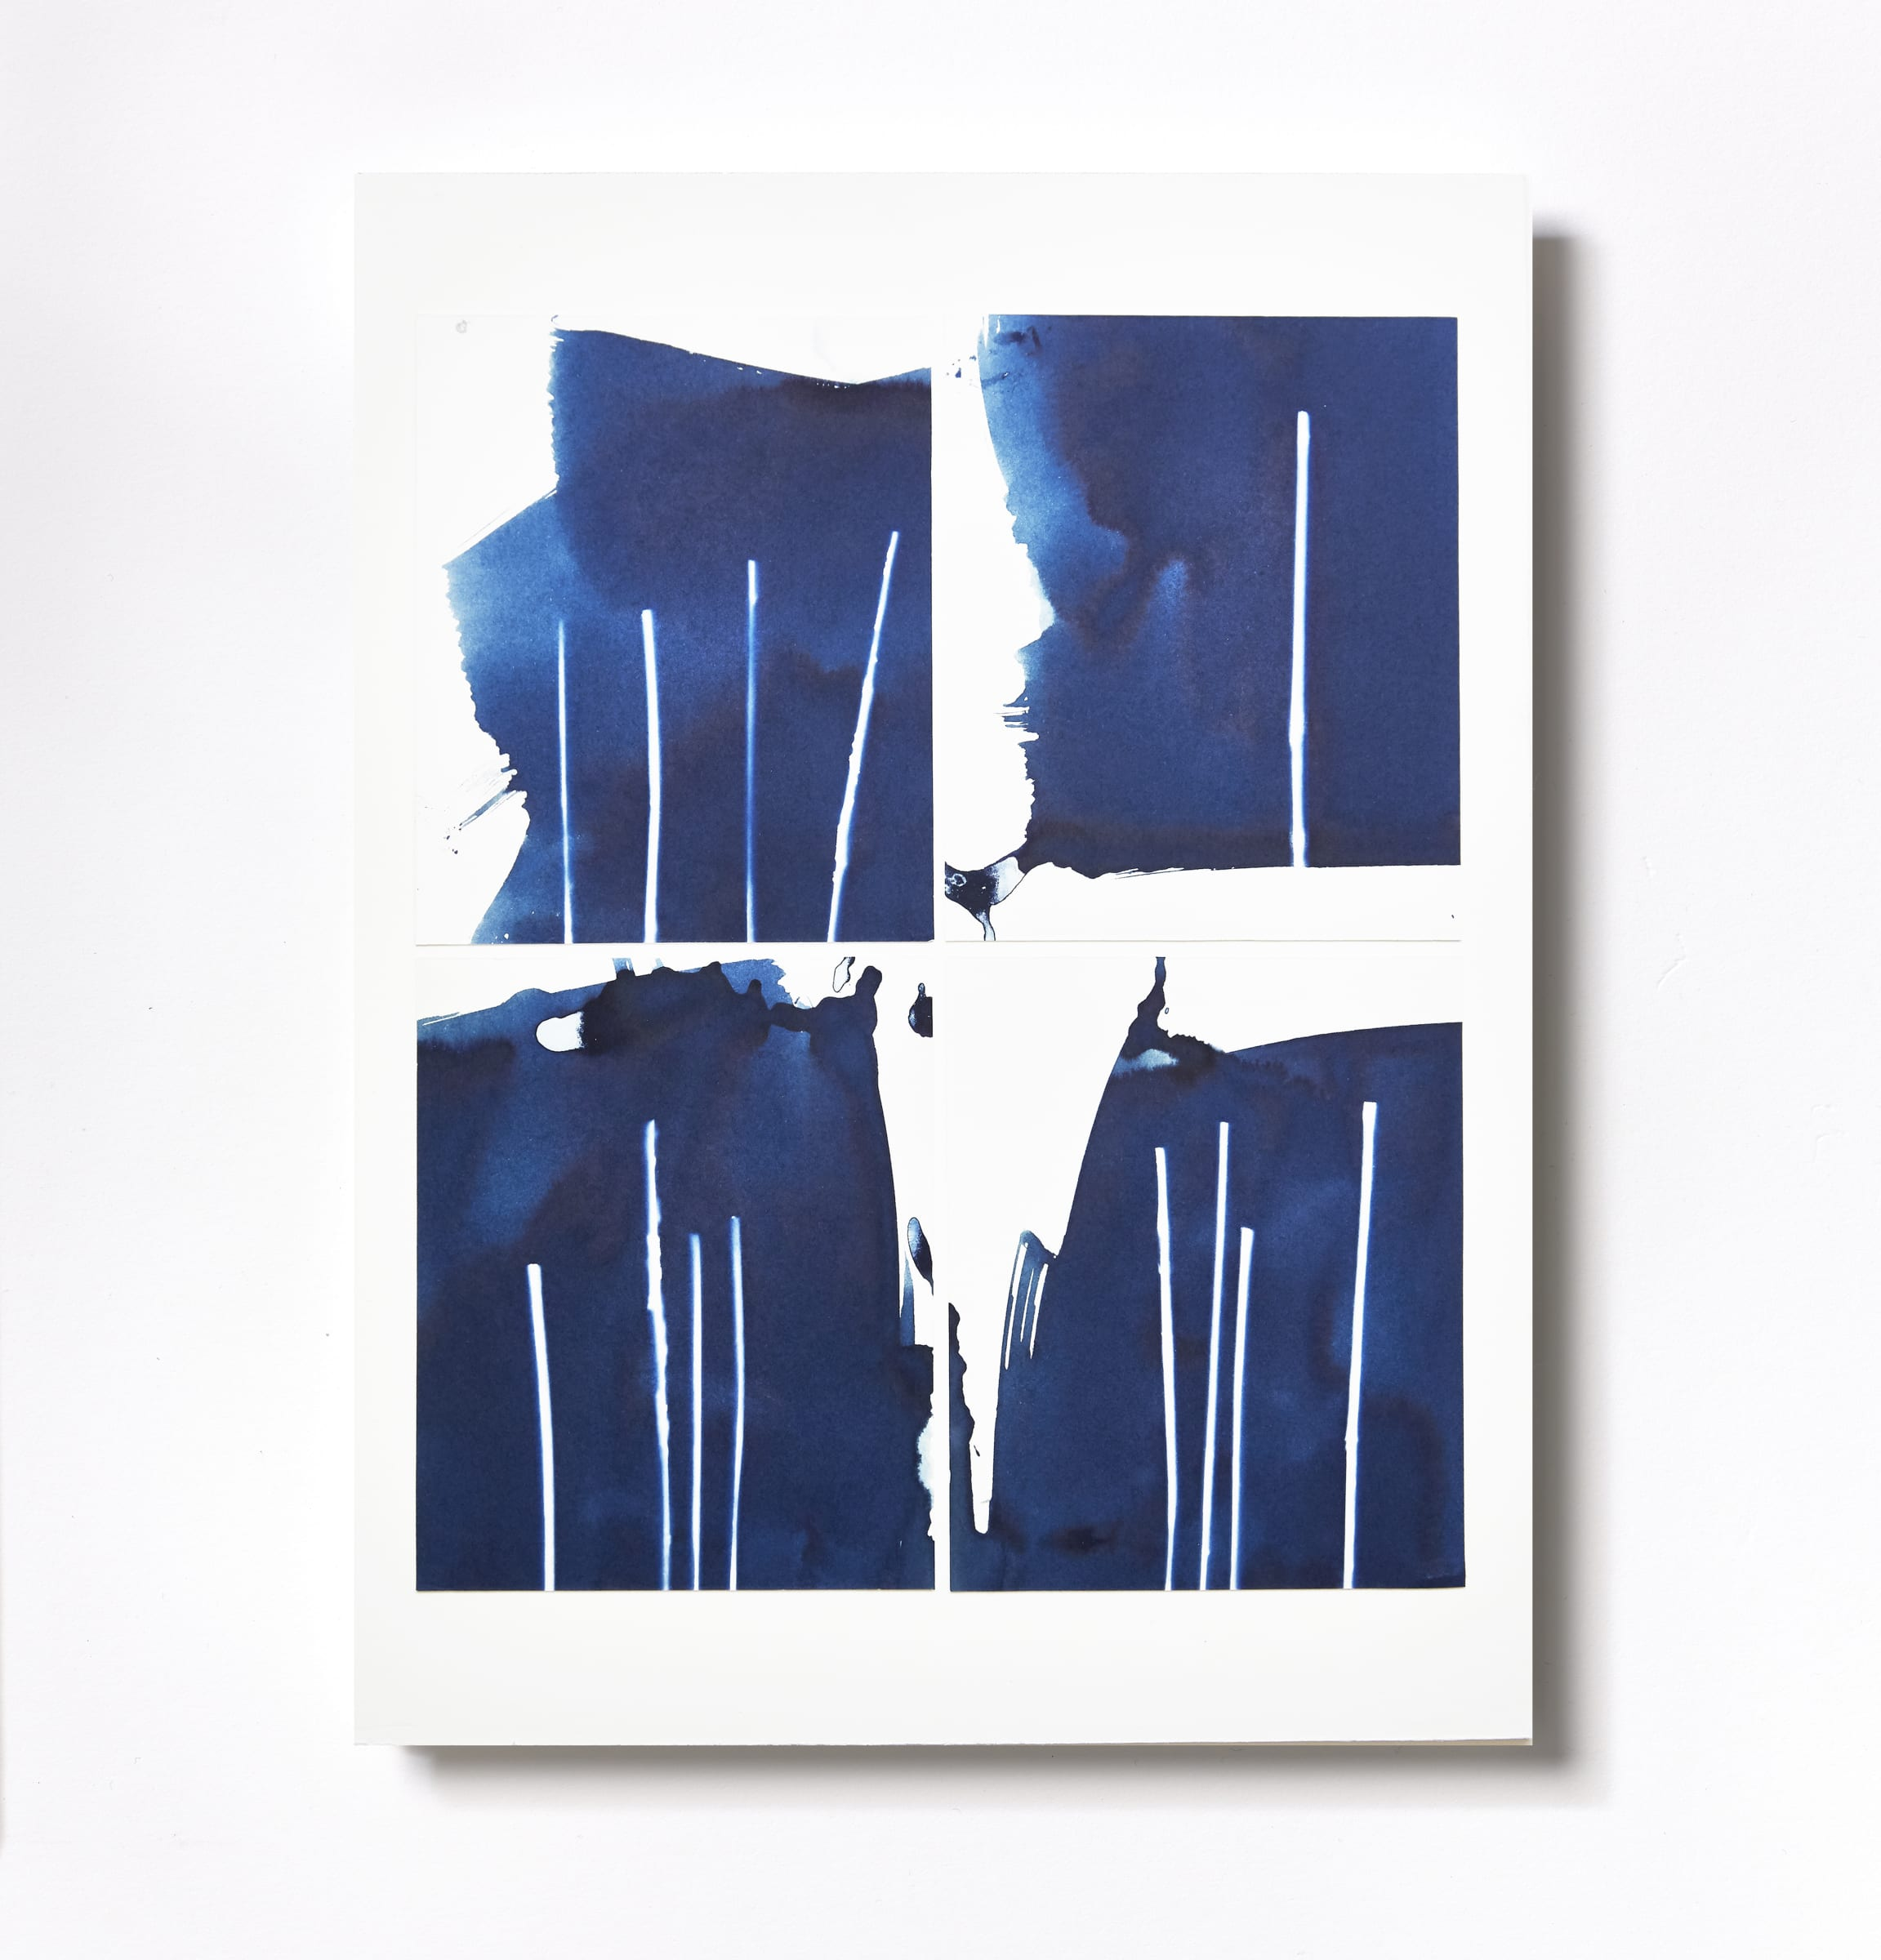 "<span class=""link fancybox-details-link""><a href=""/content/feature/119/artworks544/"">View Detail Page</a></span><div class=""medium"">Cyanotype Collage of four hand-painted 5"" x 4"" cyanotype photograms on a 12 x 9 inch 8-ply museum board.<br /> Print only<br /> Unique</div> <div class=""dimensions"">30.5 x 22.9 cm<br /> 12 x 9 in</div>"